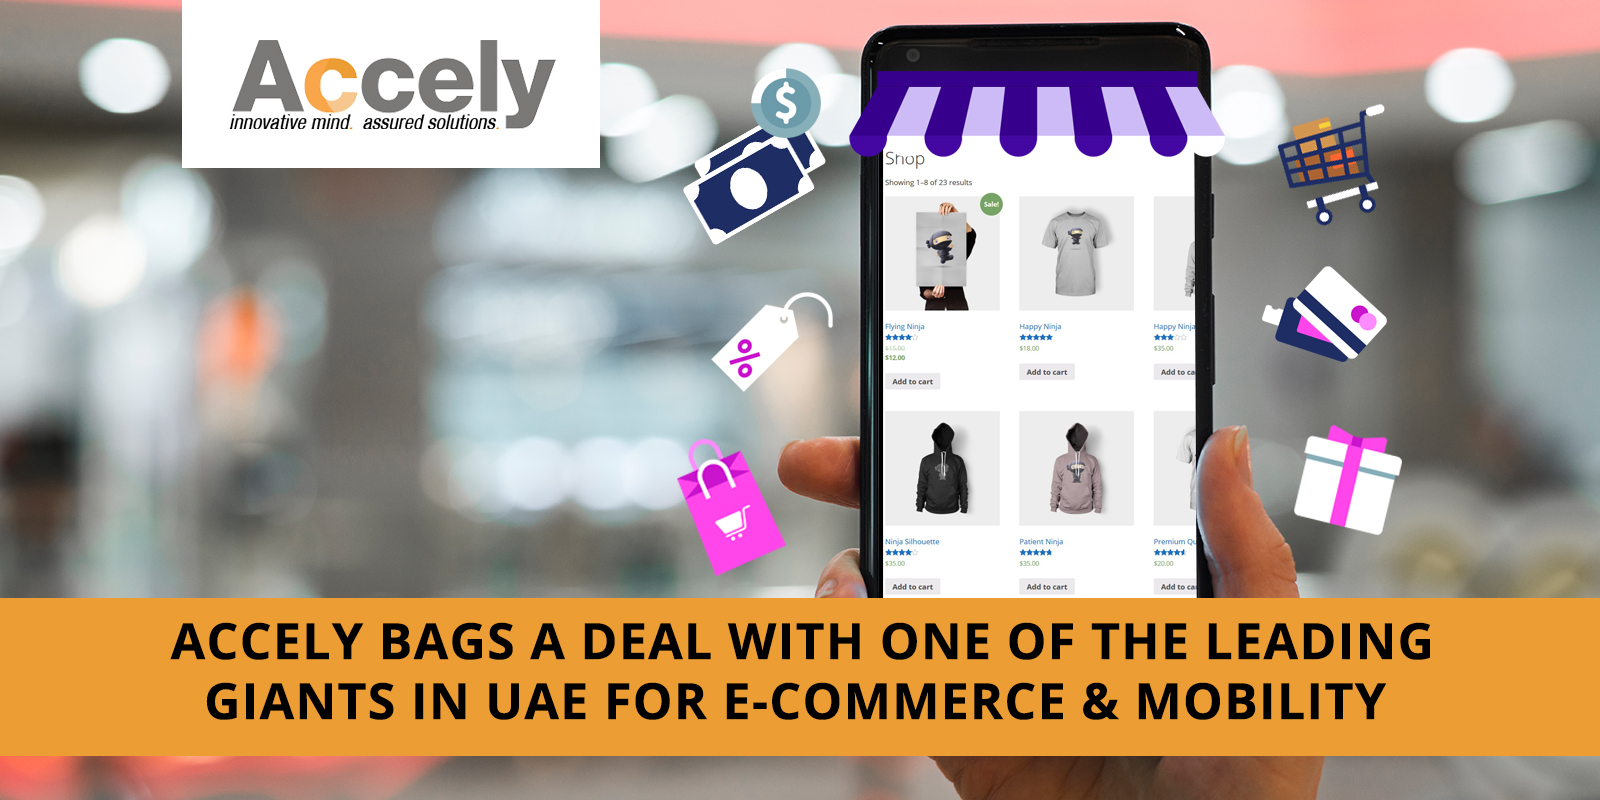 Accely Bags A Deal With One of the Leading Giants in UAE for E-Commerce & Mobility